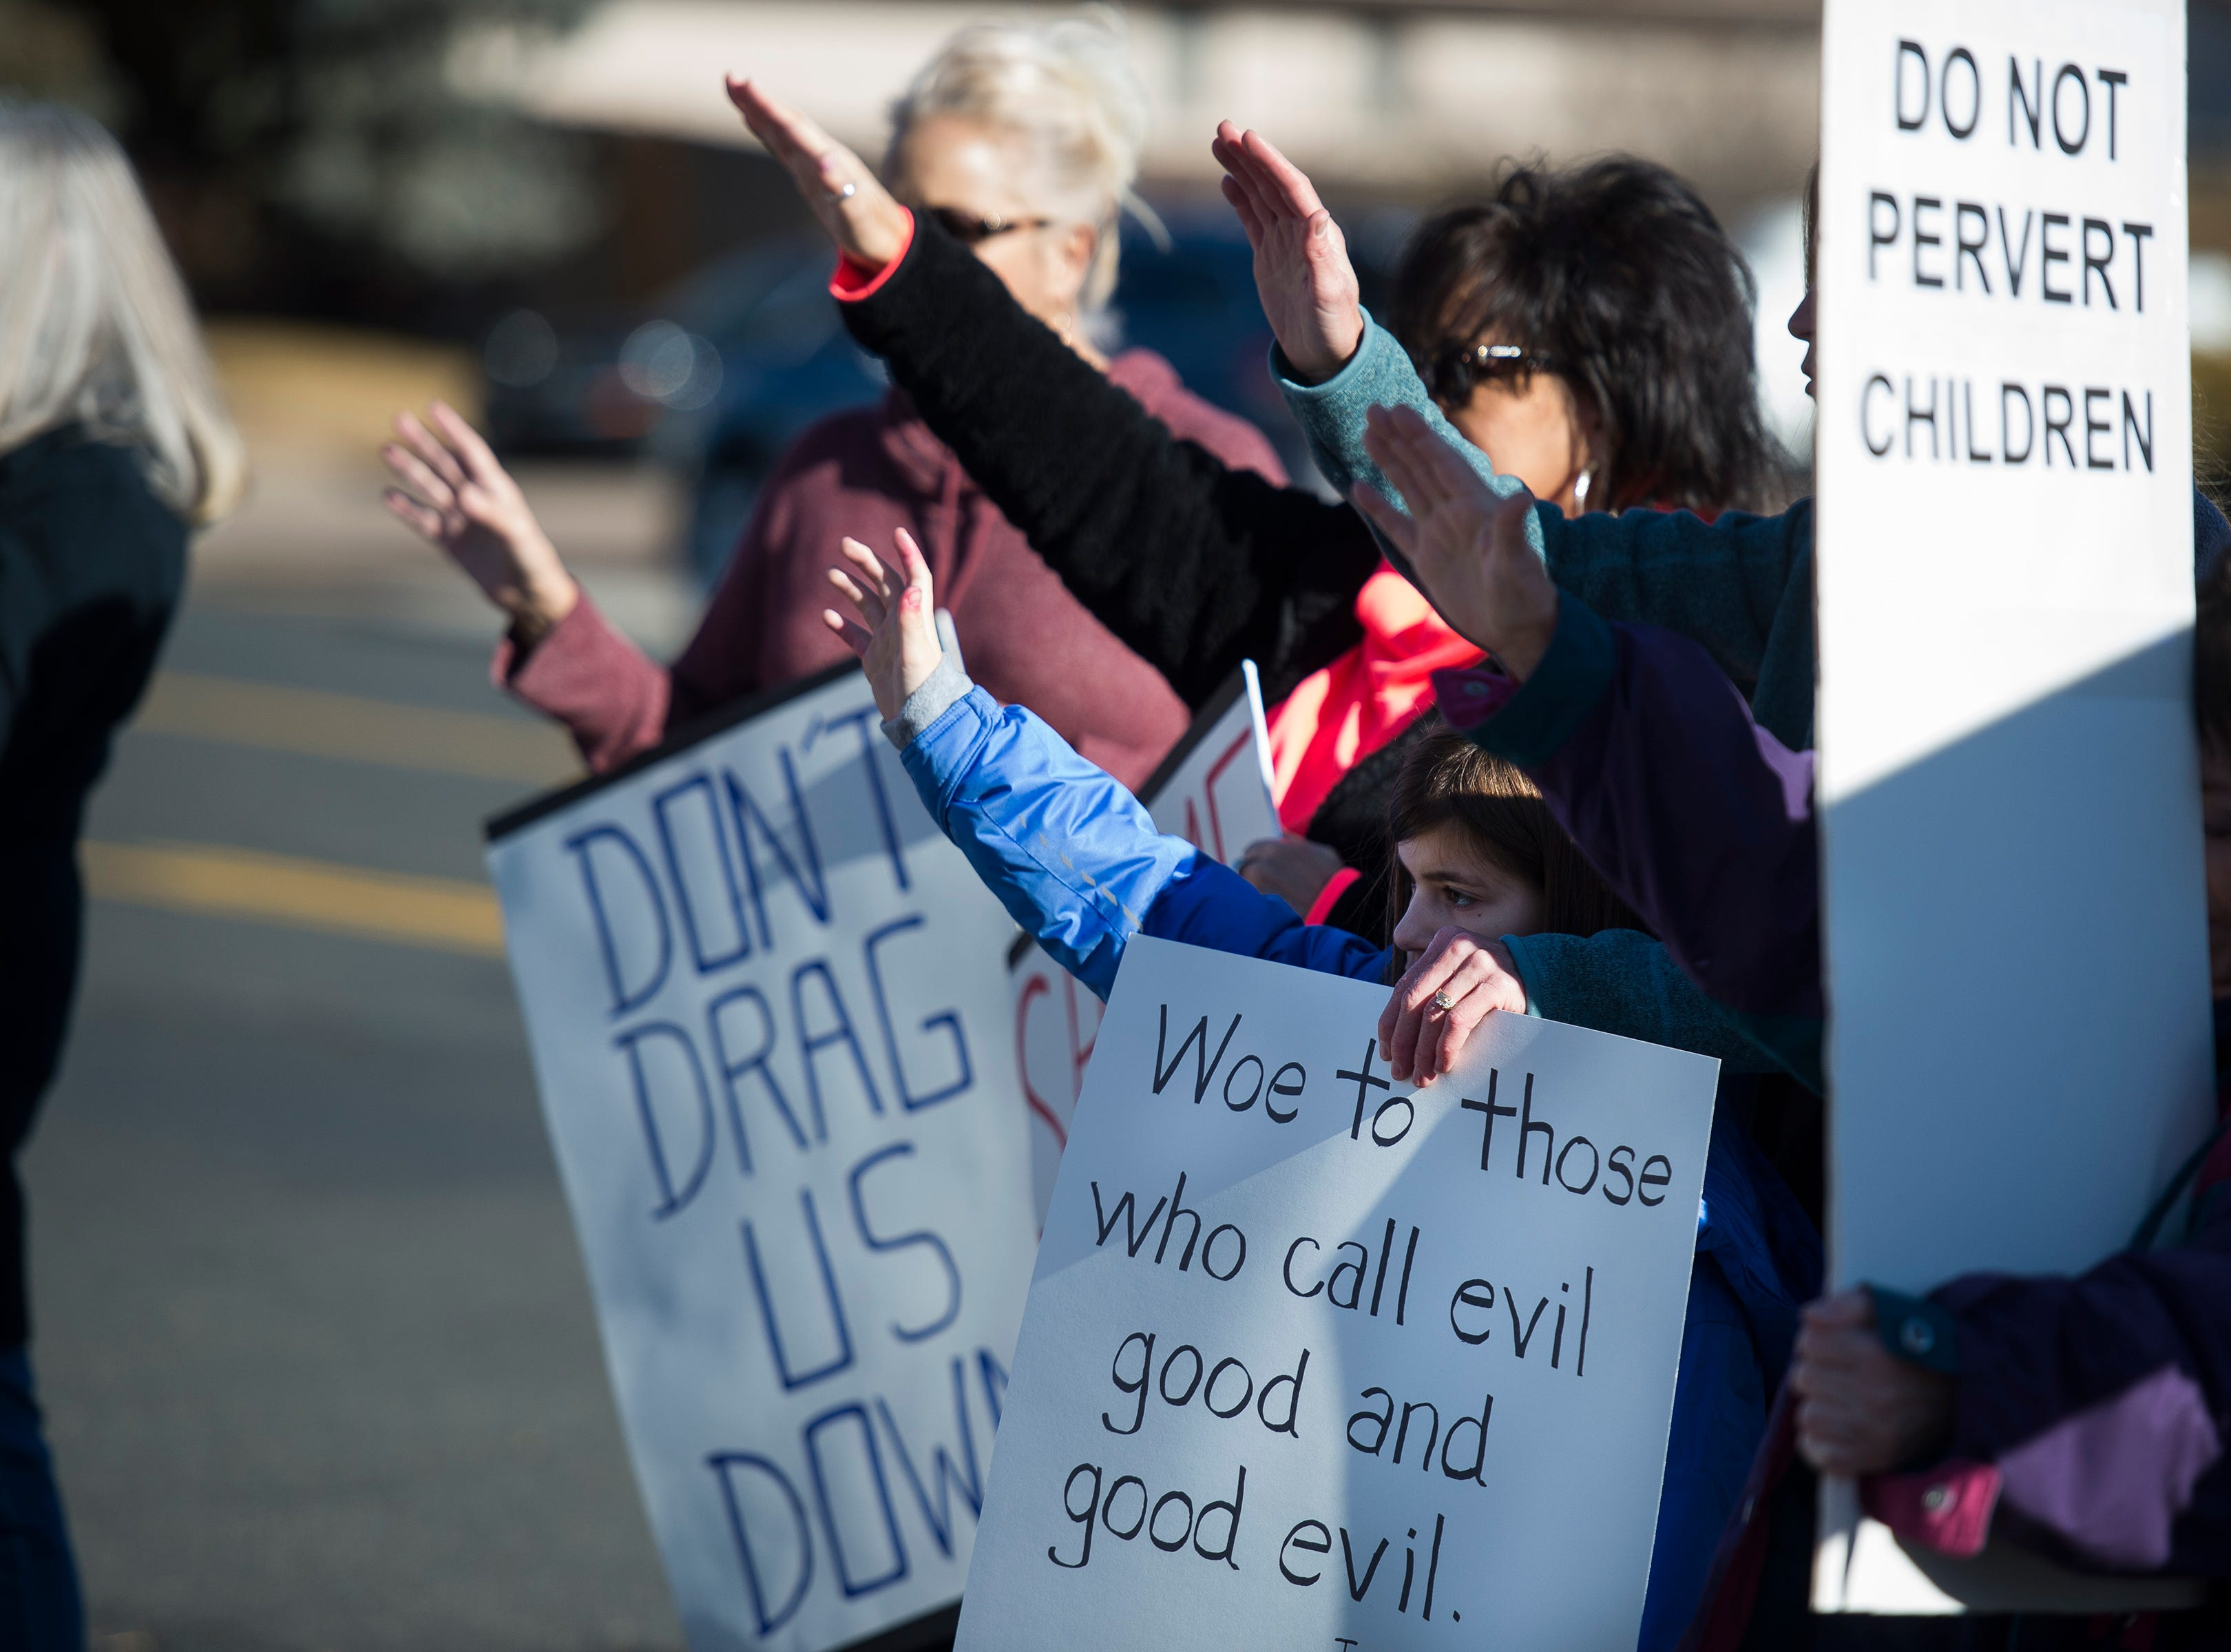 Protesters gather outside the library before Drag Queen Story Hour on Saturday, Jan. 12, 2019, at the Clearview Public Library in Windsor, Colo. Drag Queen Story Hour is a program put on by SPLASH, an LGBTQ+ youth outreach organization.